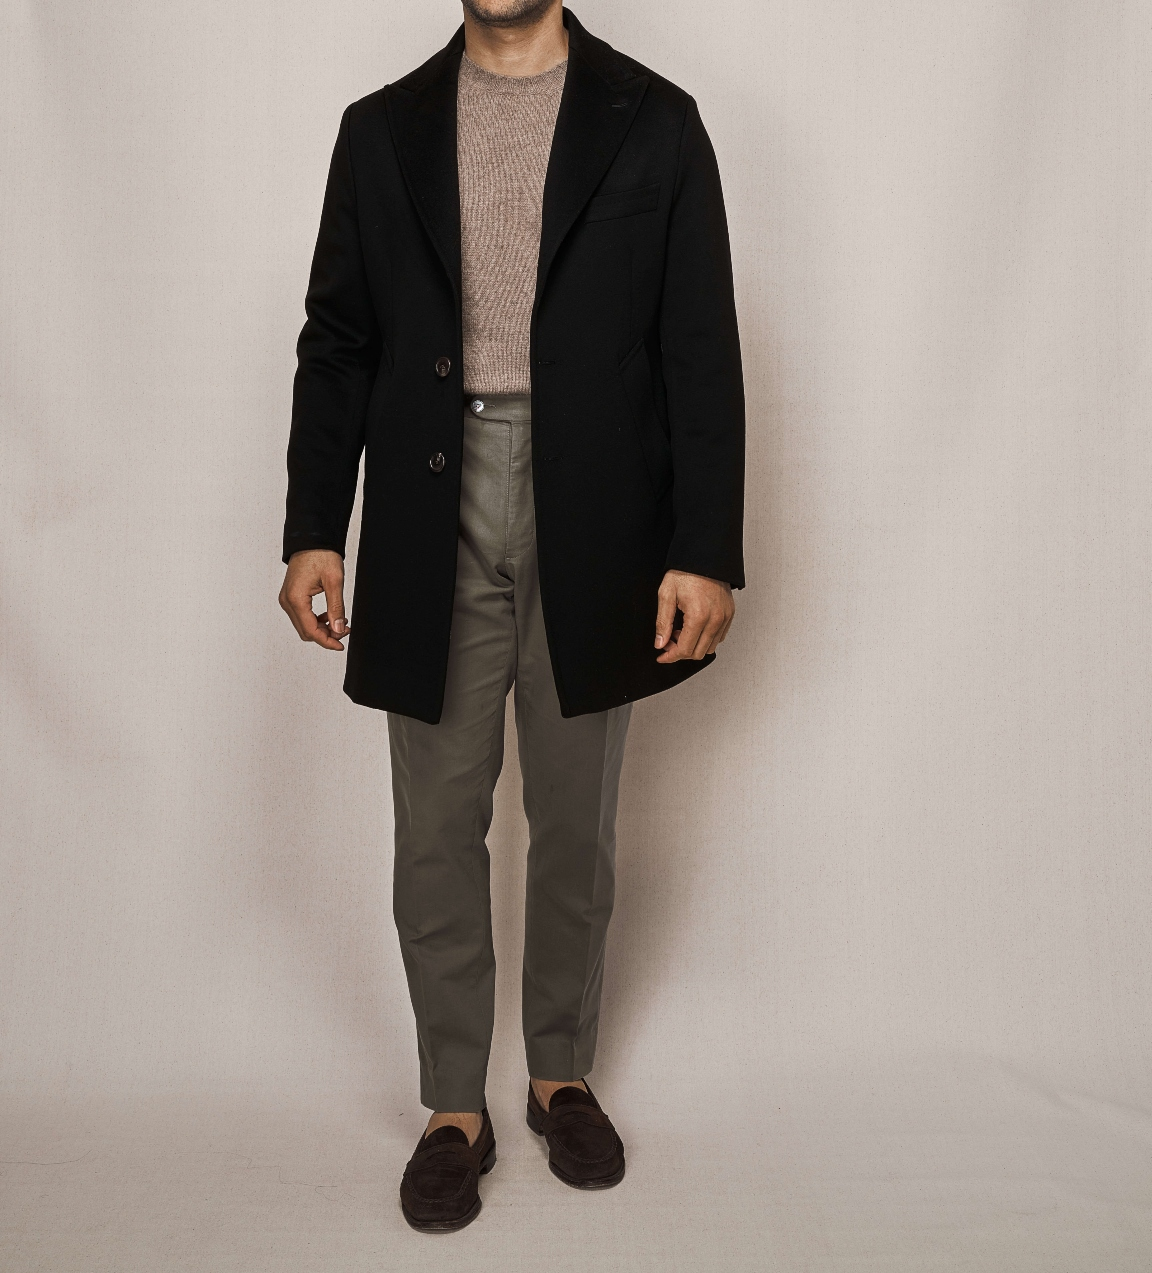 Single Breasted Overcoat | Olive Cotton Stretch Trouser